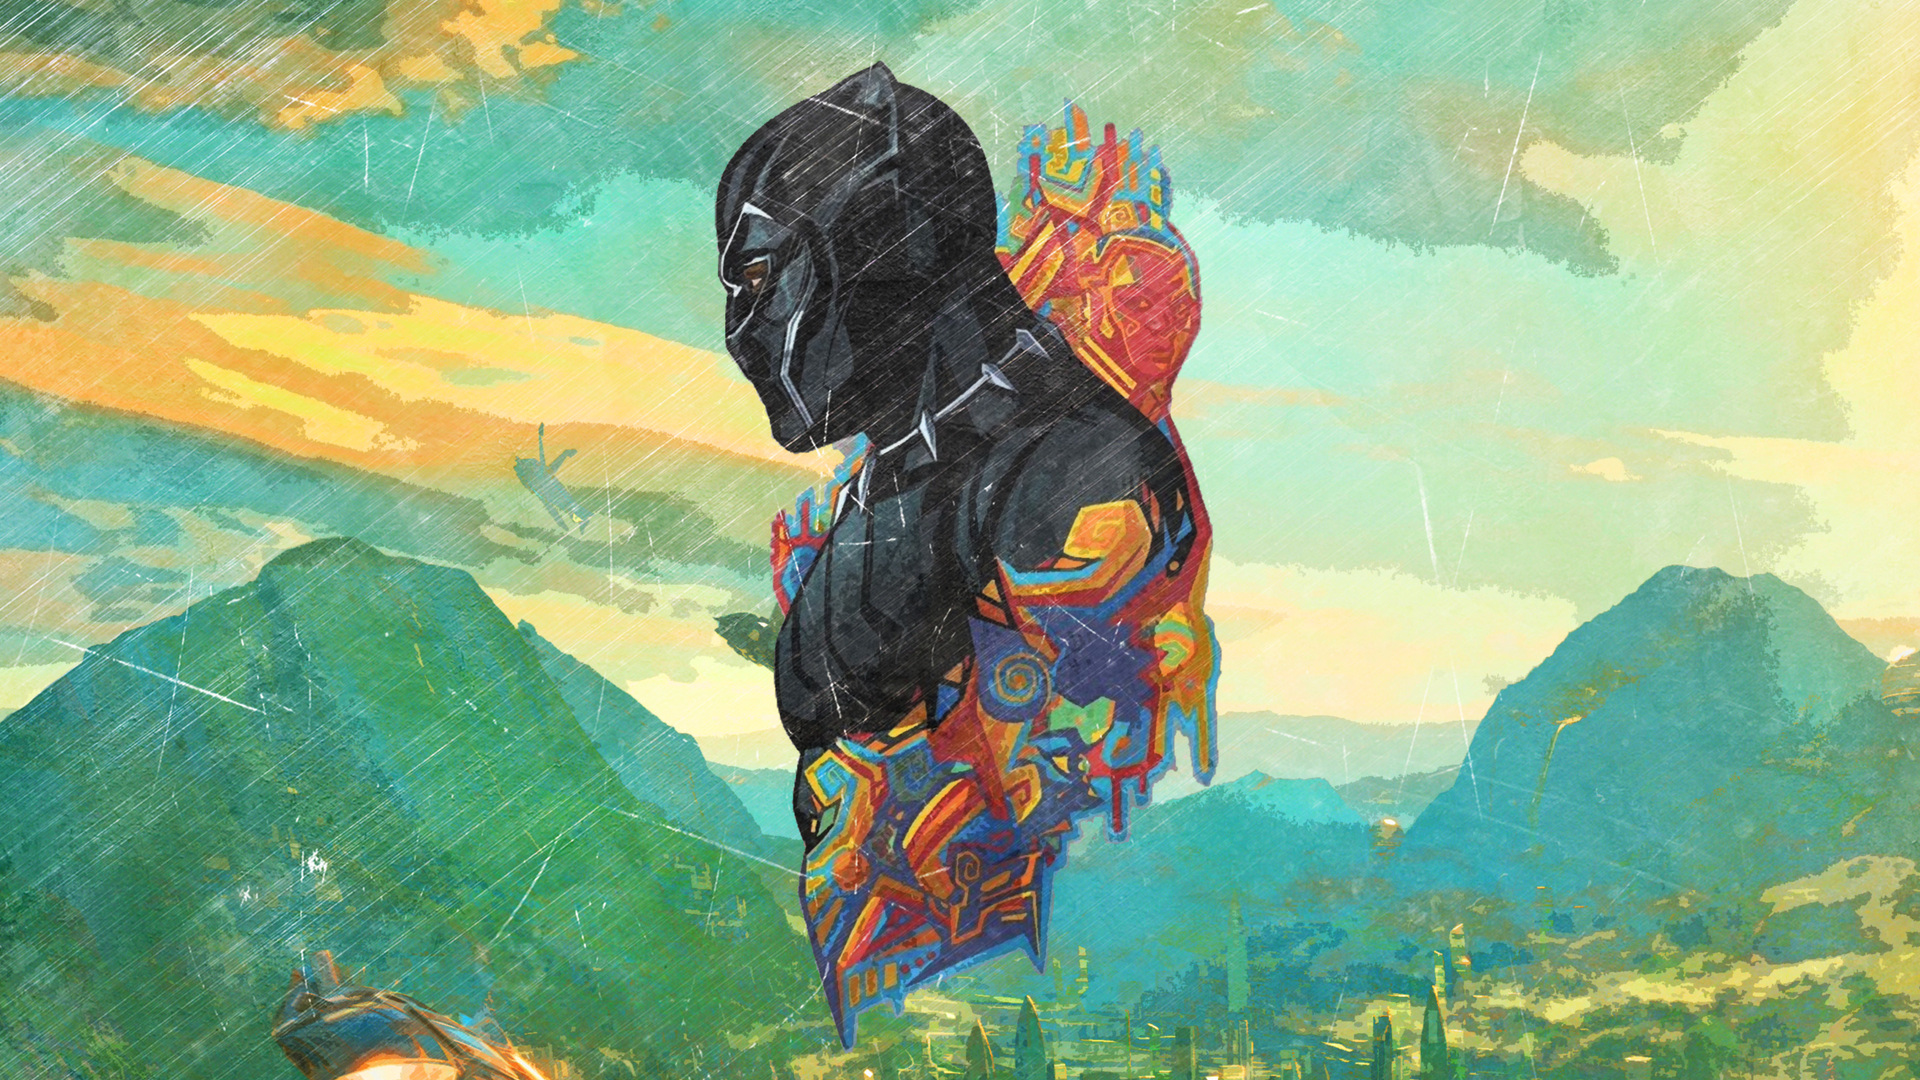 black-panther-promo-art-jm-1920x1080.jpg